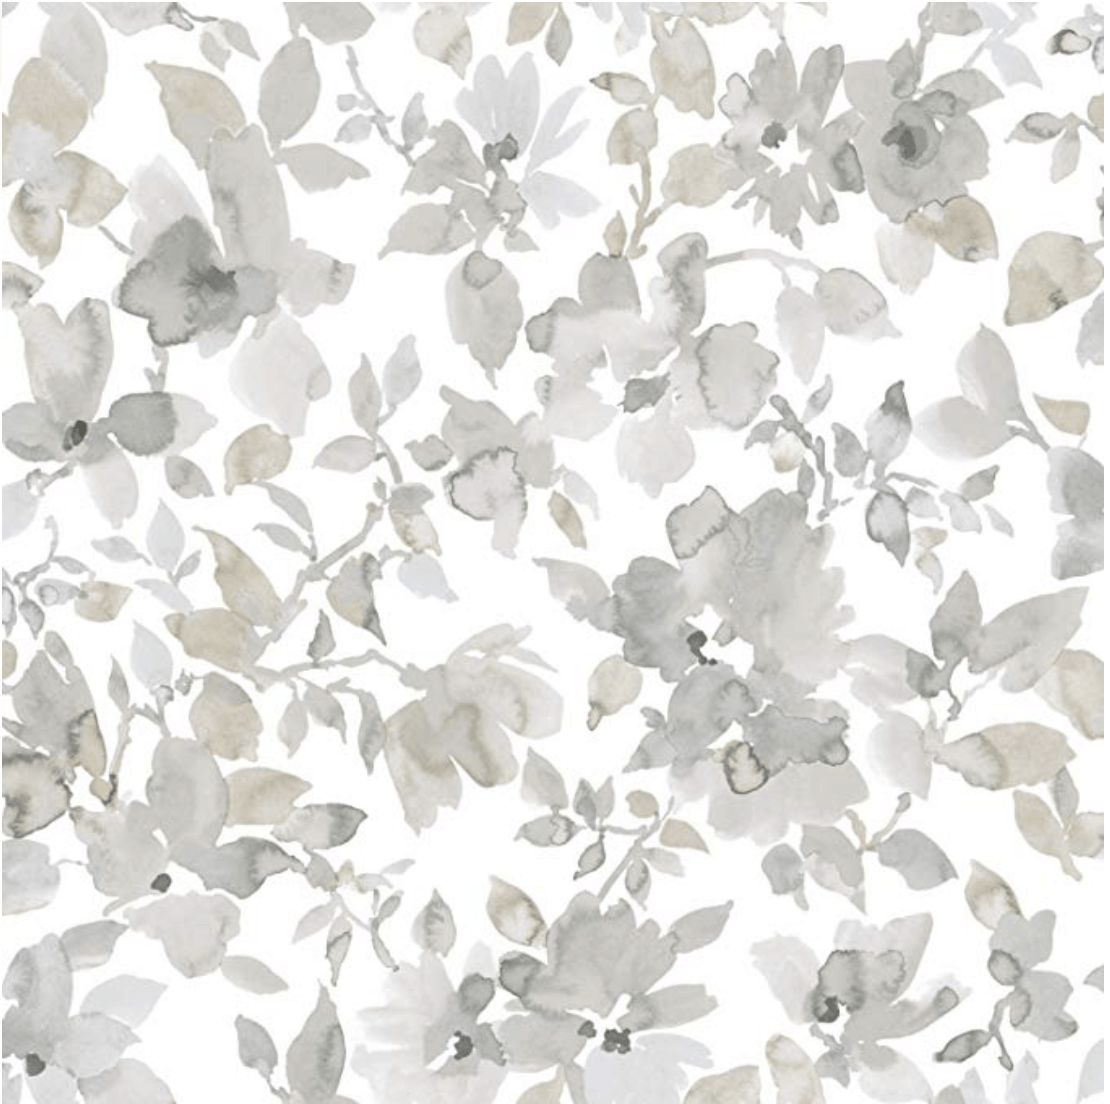 Roommates Neutral Watercolor Floral Peel And Stick Wallpaper Watercolor Floral Wallpaper Farmhouse Wallpaper Floral Watercolor